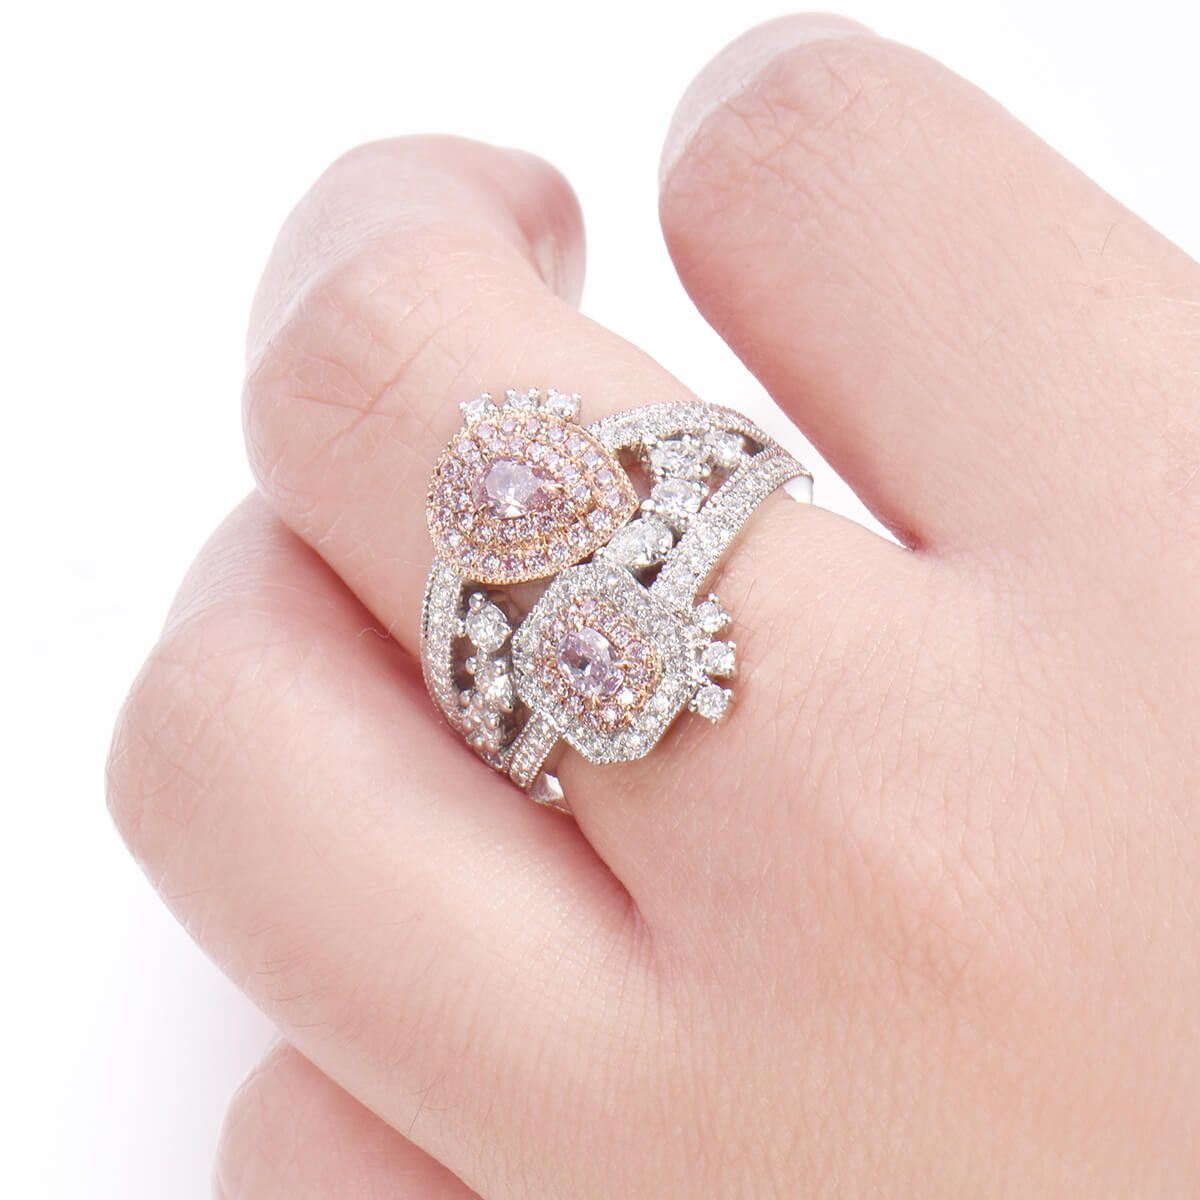 Fancy Purplish Pink Diamond Ring, 1.43 carat, I1 Clarity, GIA 2185475380